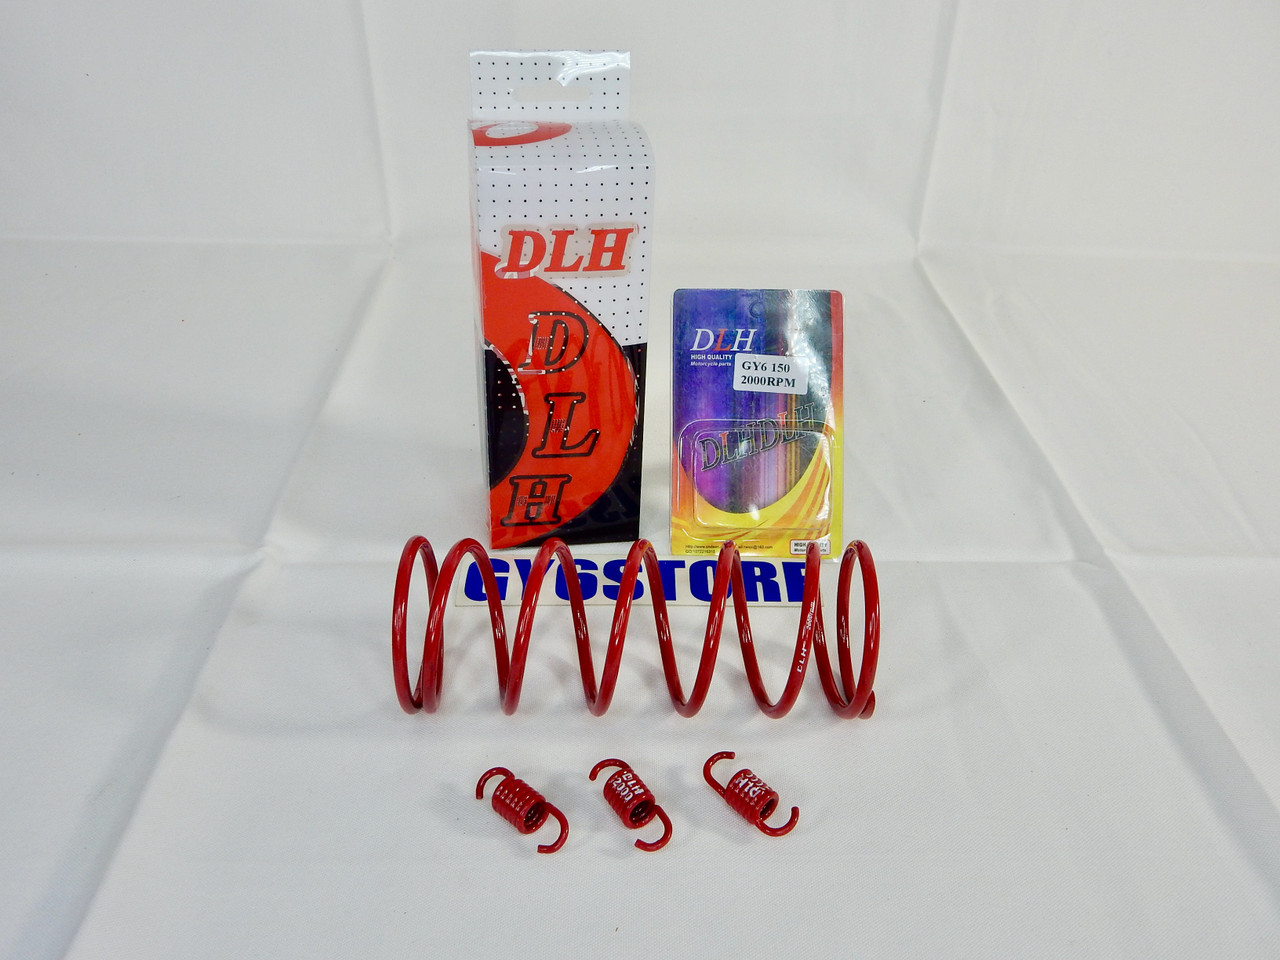 DLH 2000 RPM TORQUE & CLUTCH SPRINGS SET 150cc - 232cc QMB139 SCOOTER